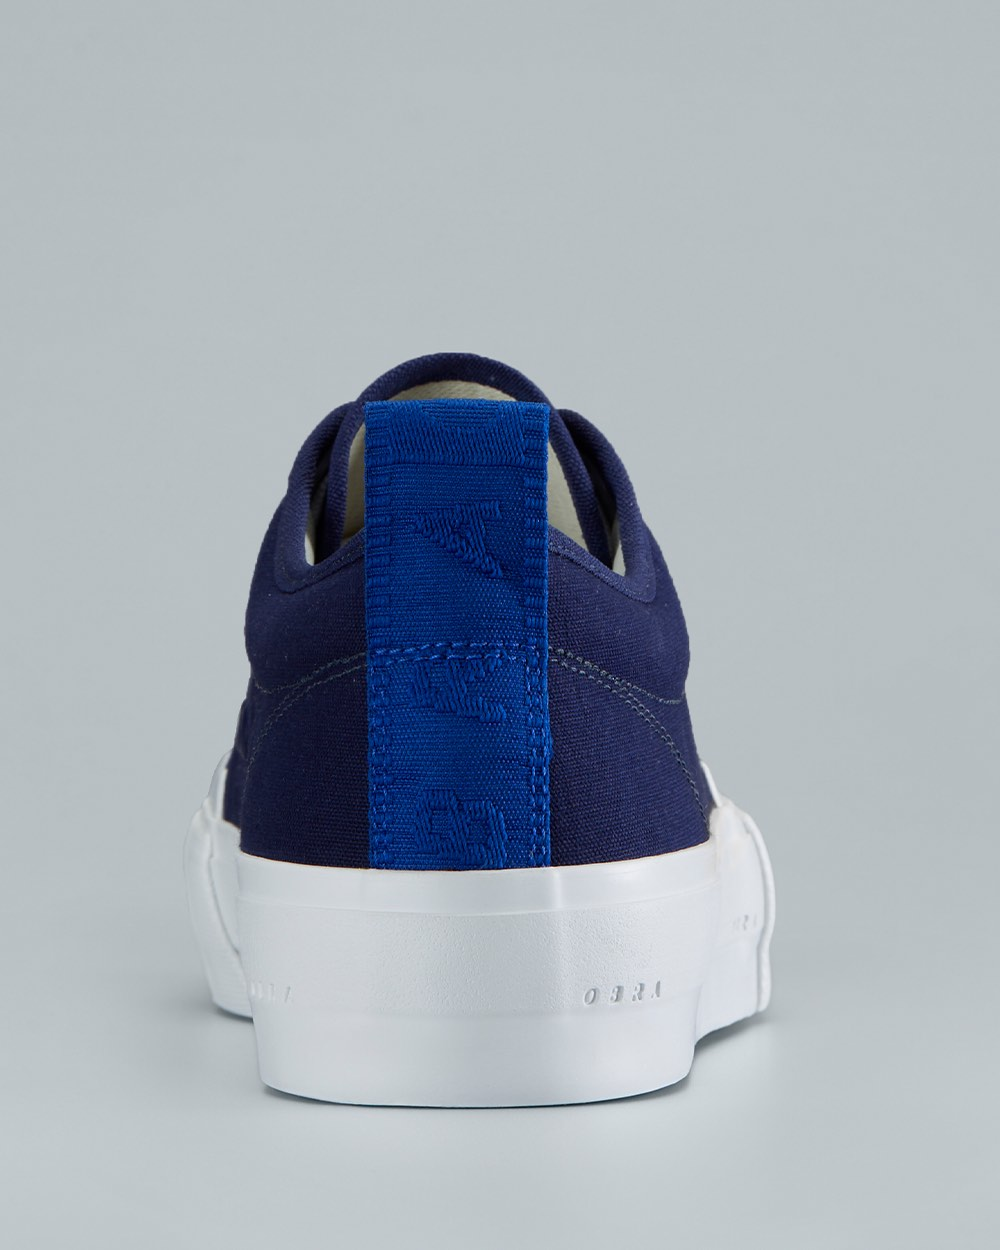 240 CANVAS LOW WRAP</br>Navy/White/OBRA Blue